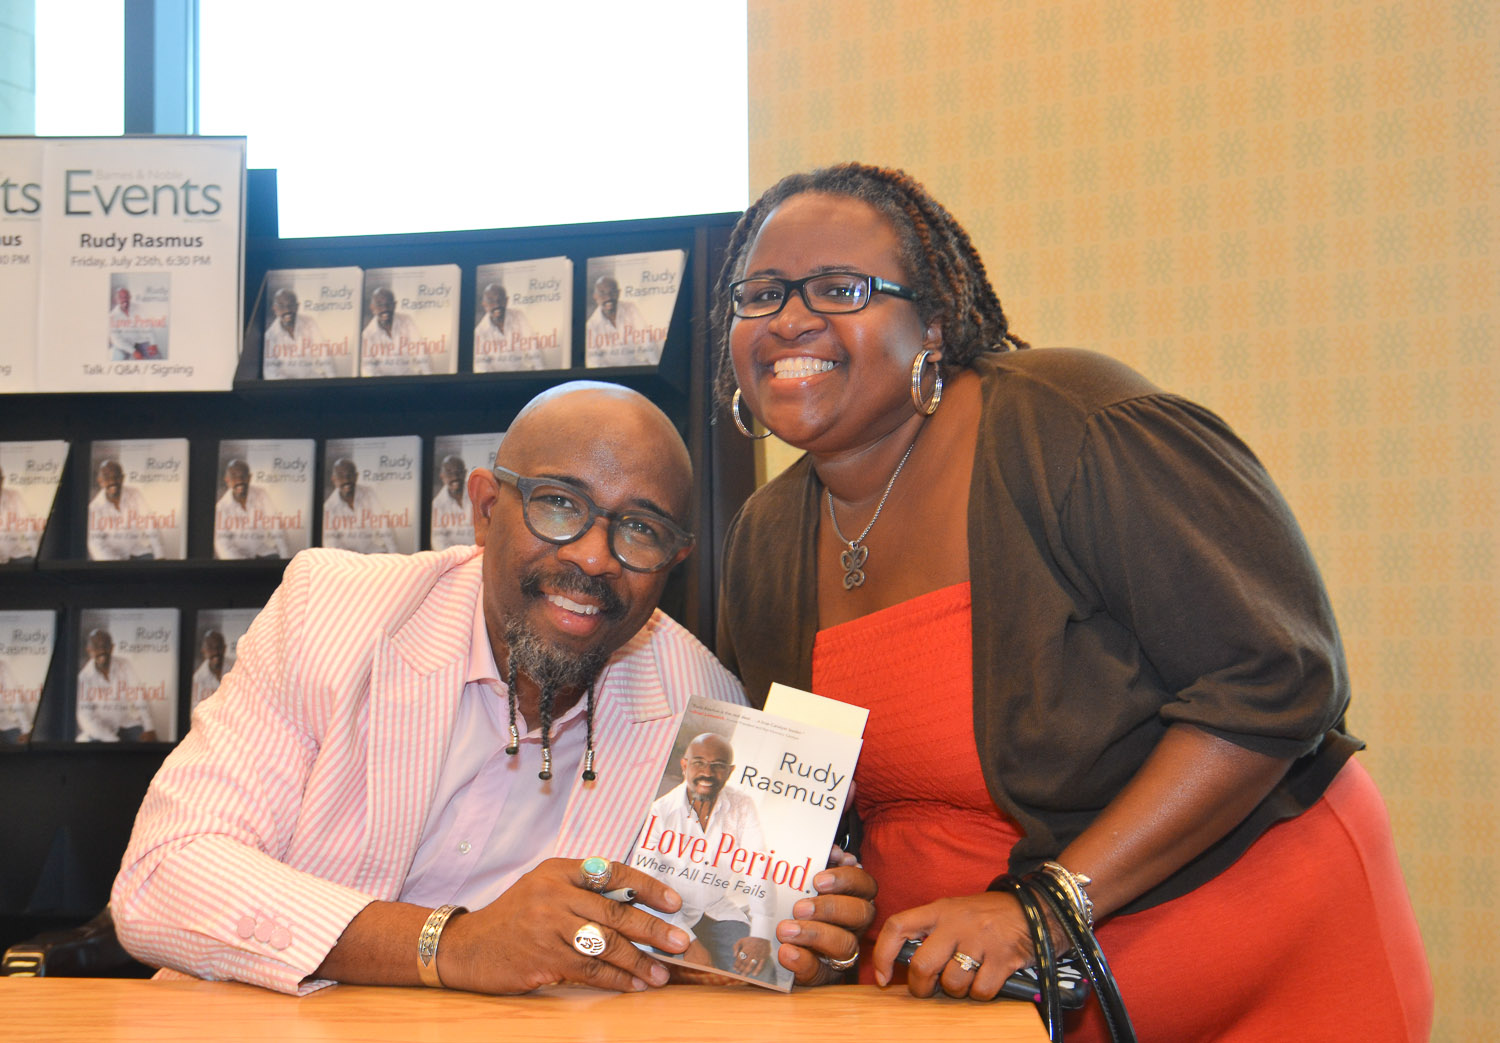 Paster Rudy book signing -0242.jpg